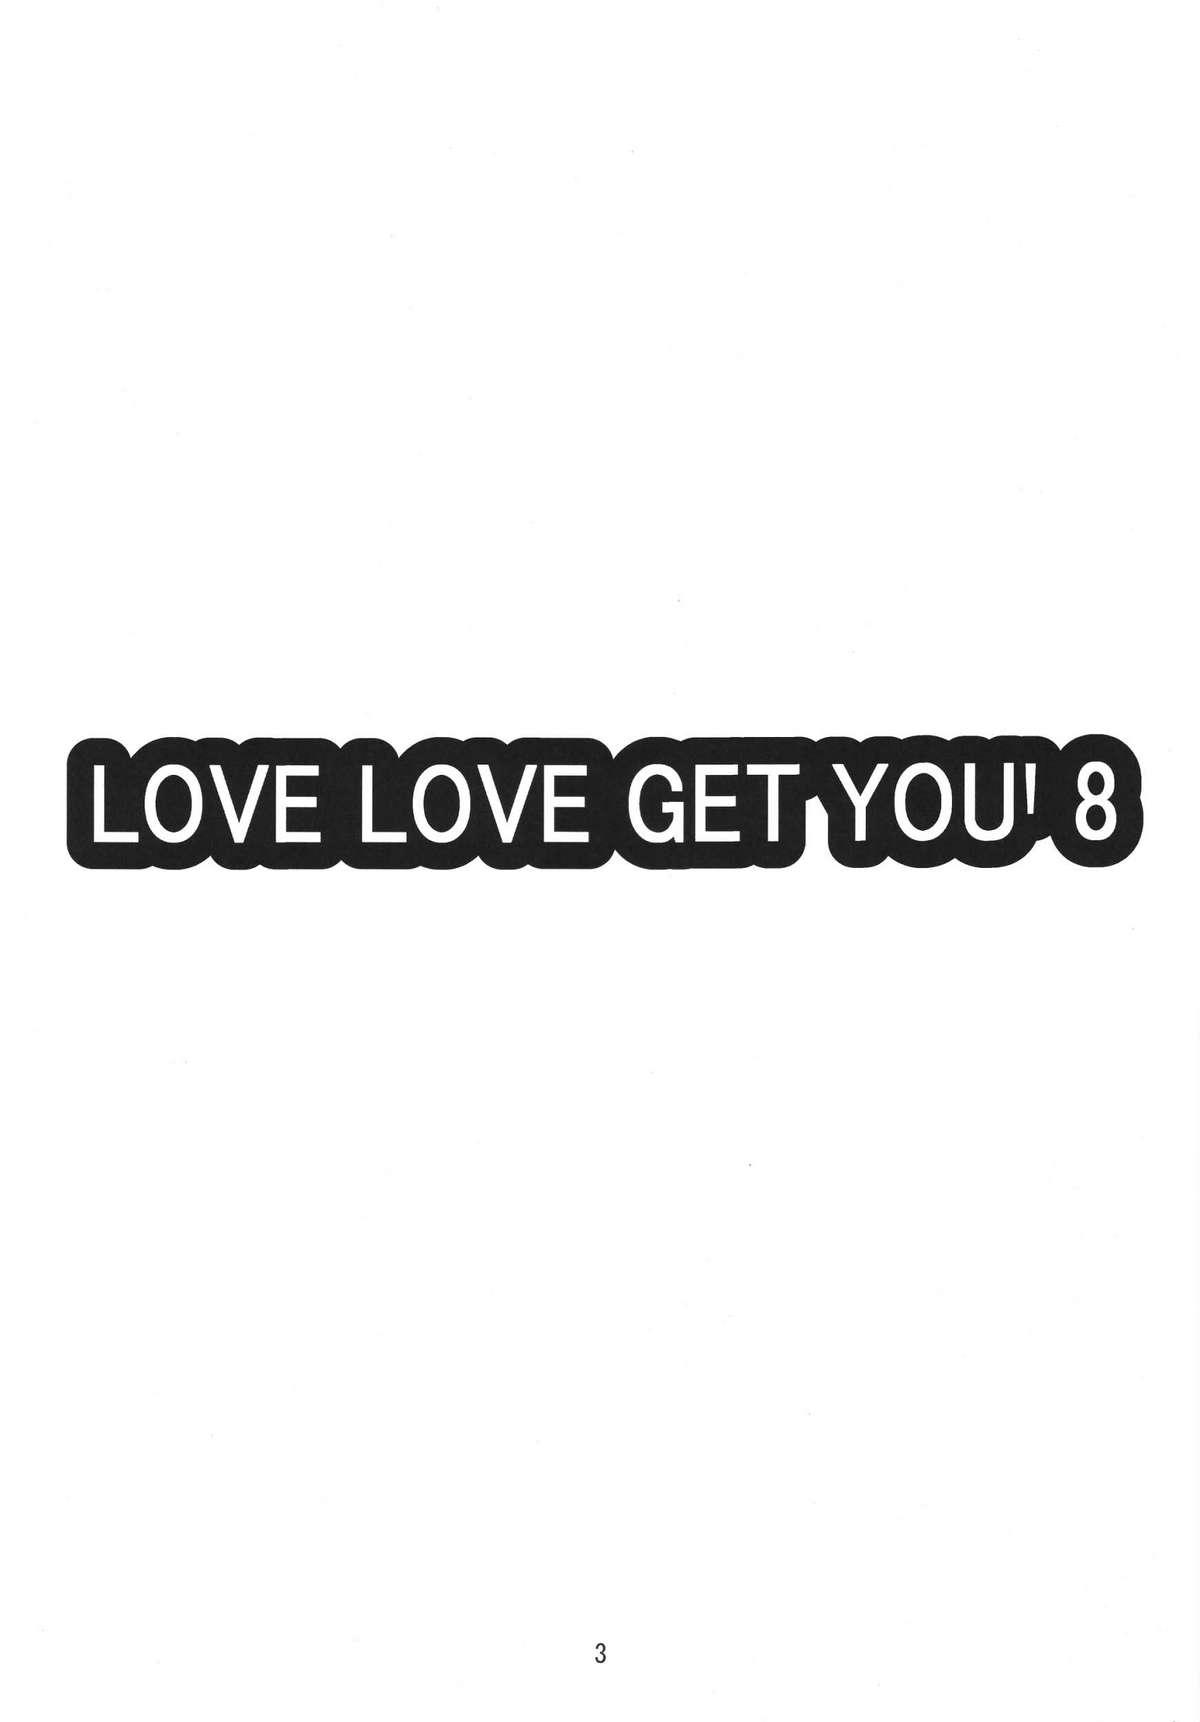 Love Love Get You! 8 2